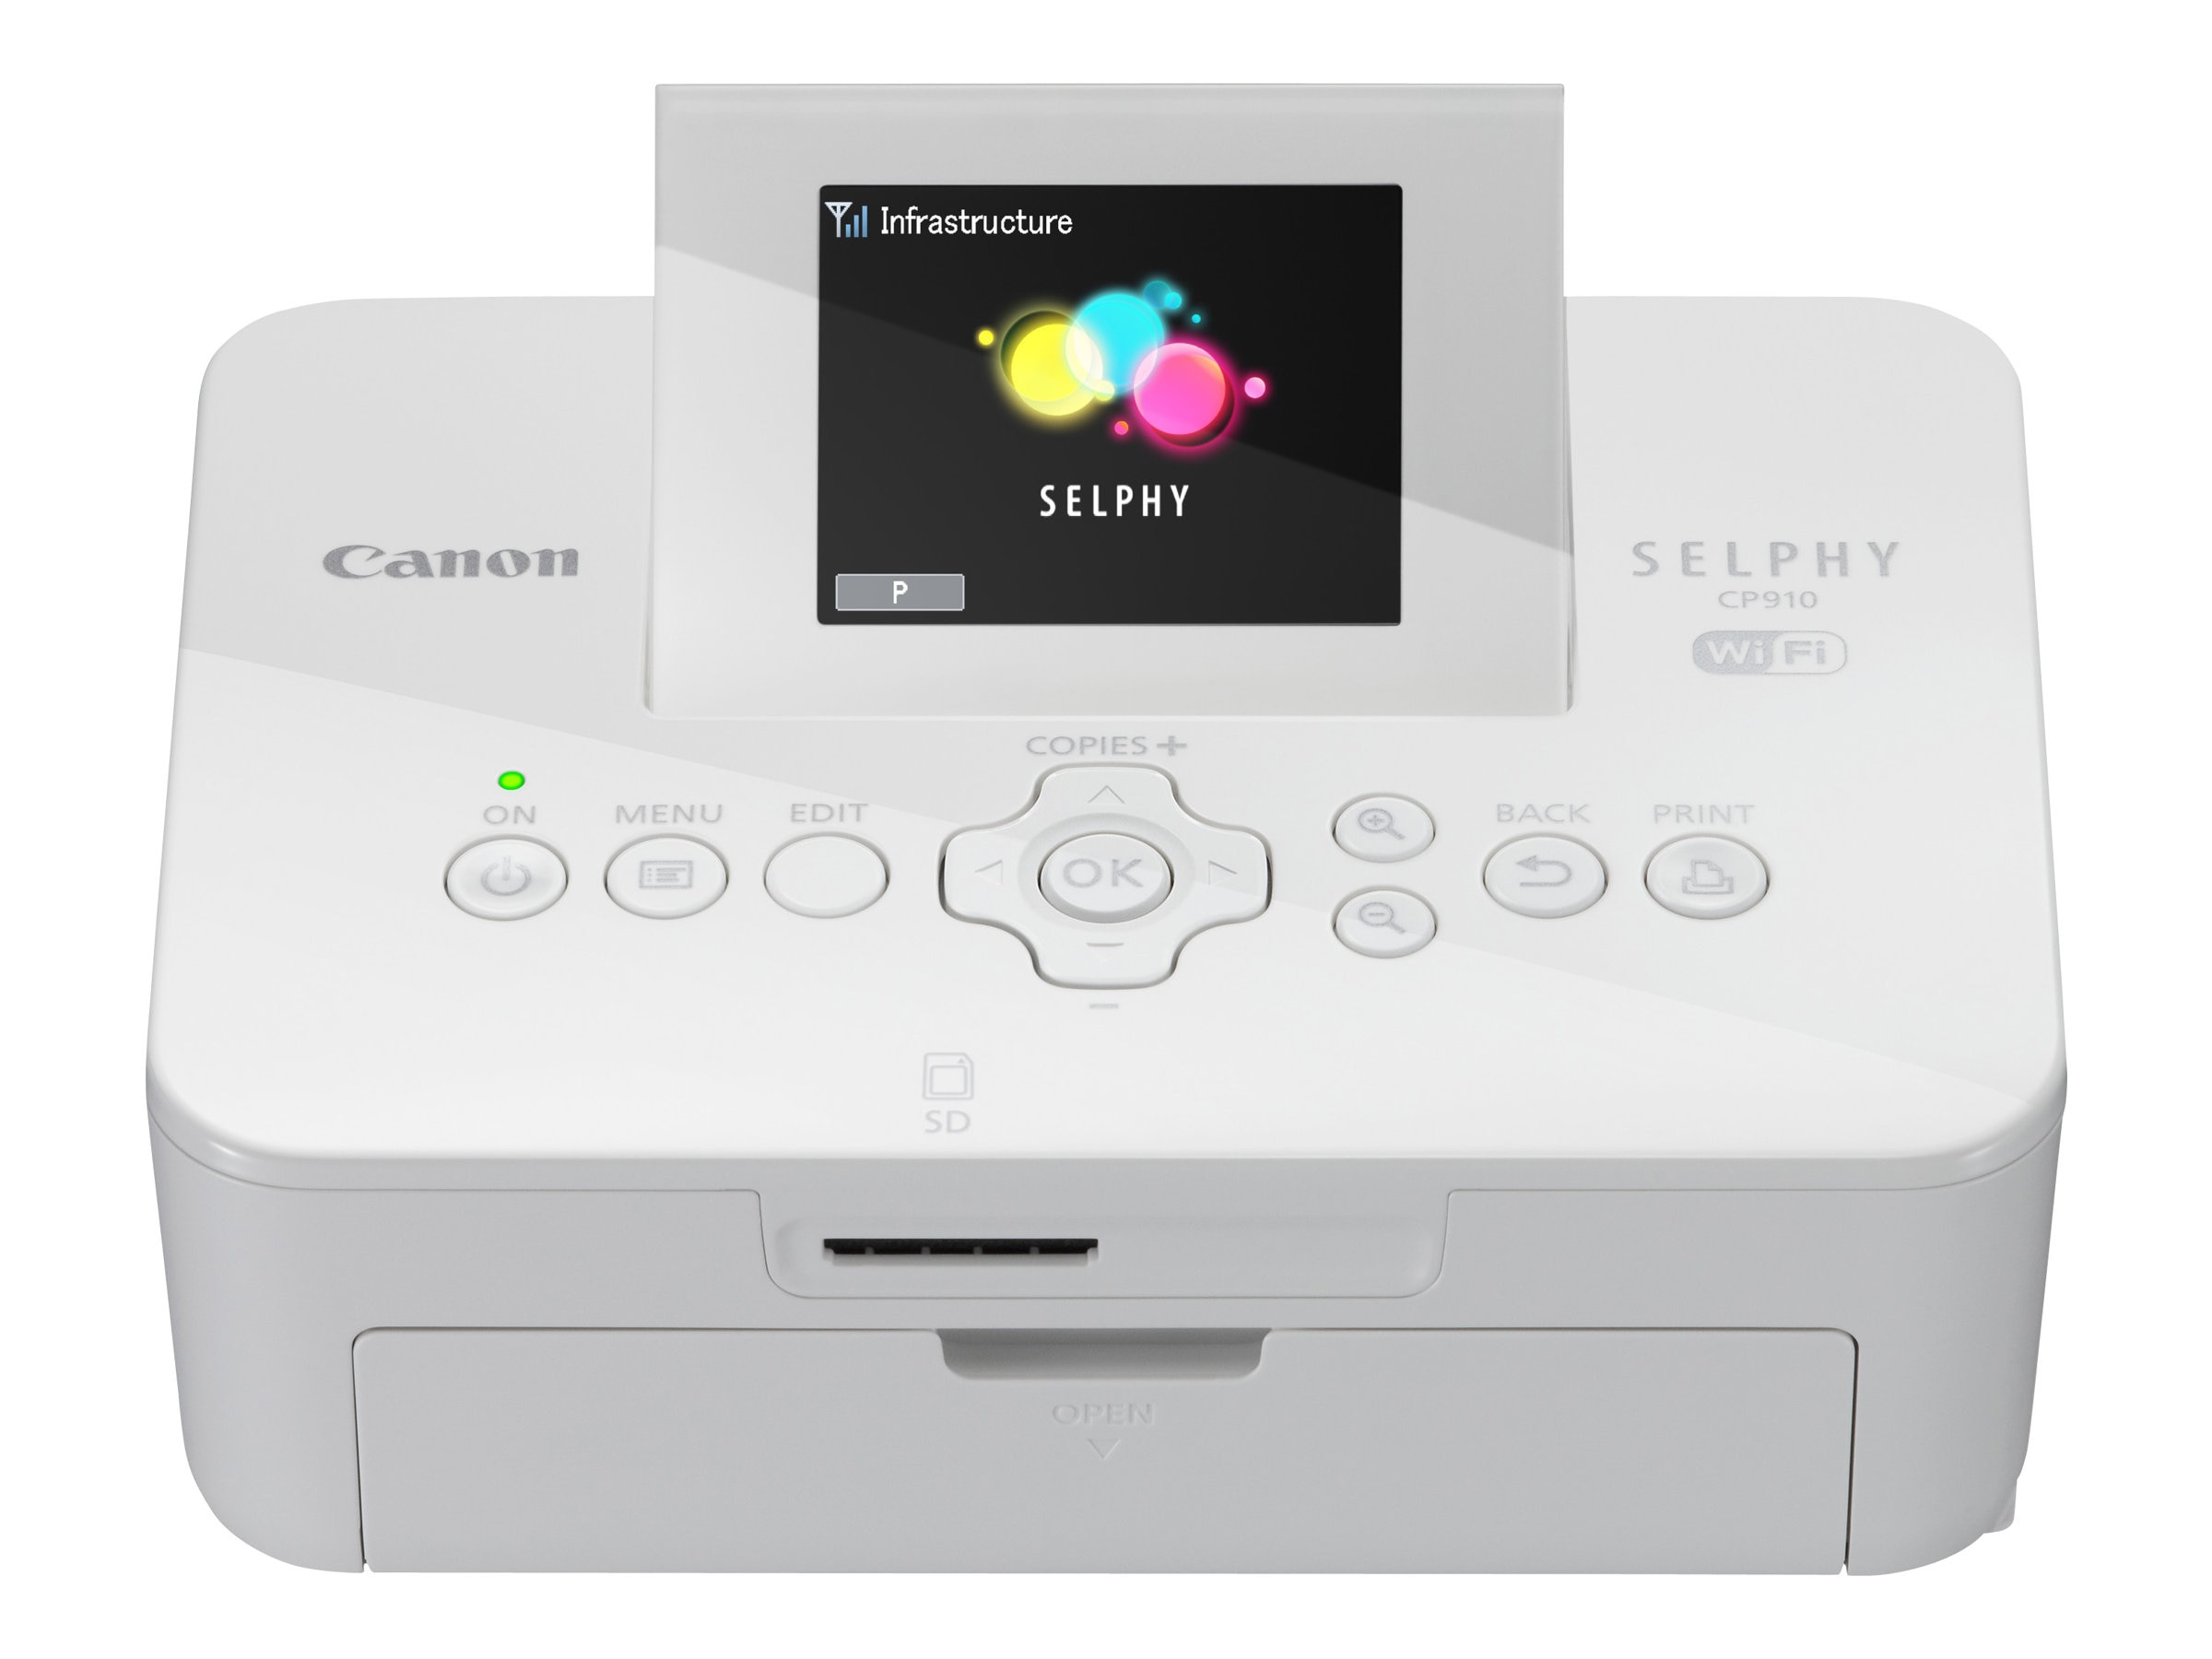 Canon SELPHY CP910 Compact Photo Printer - White, 8427B001